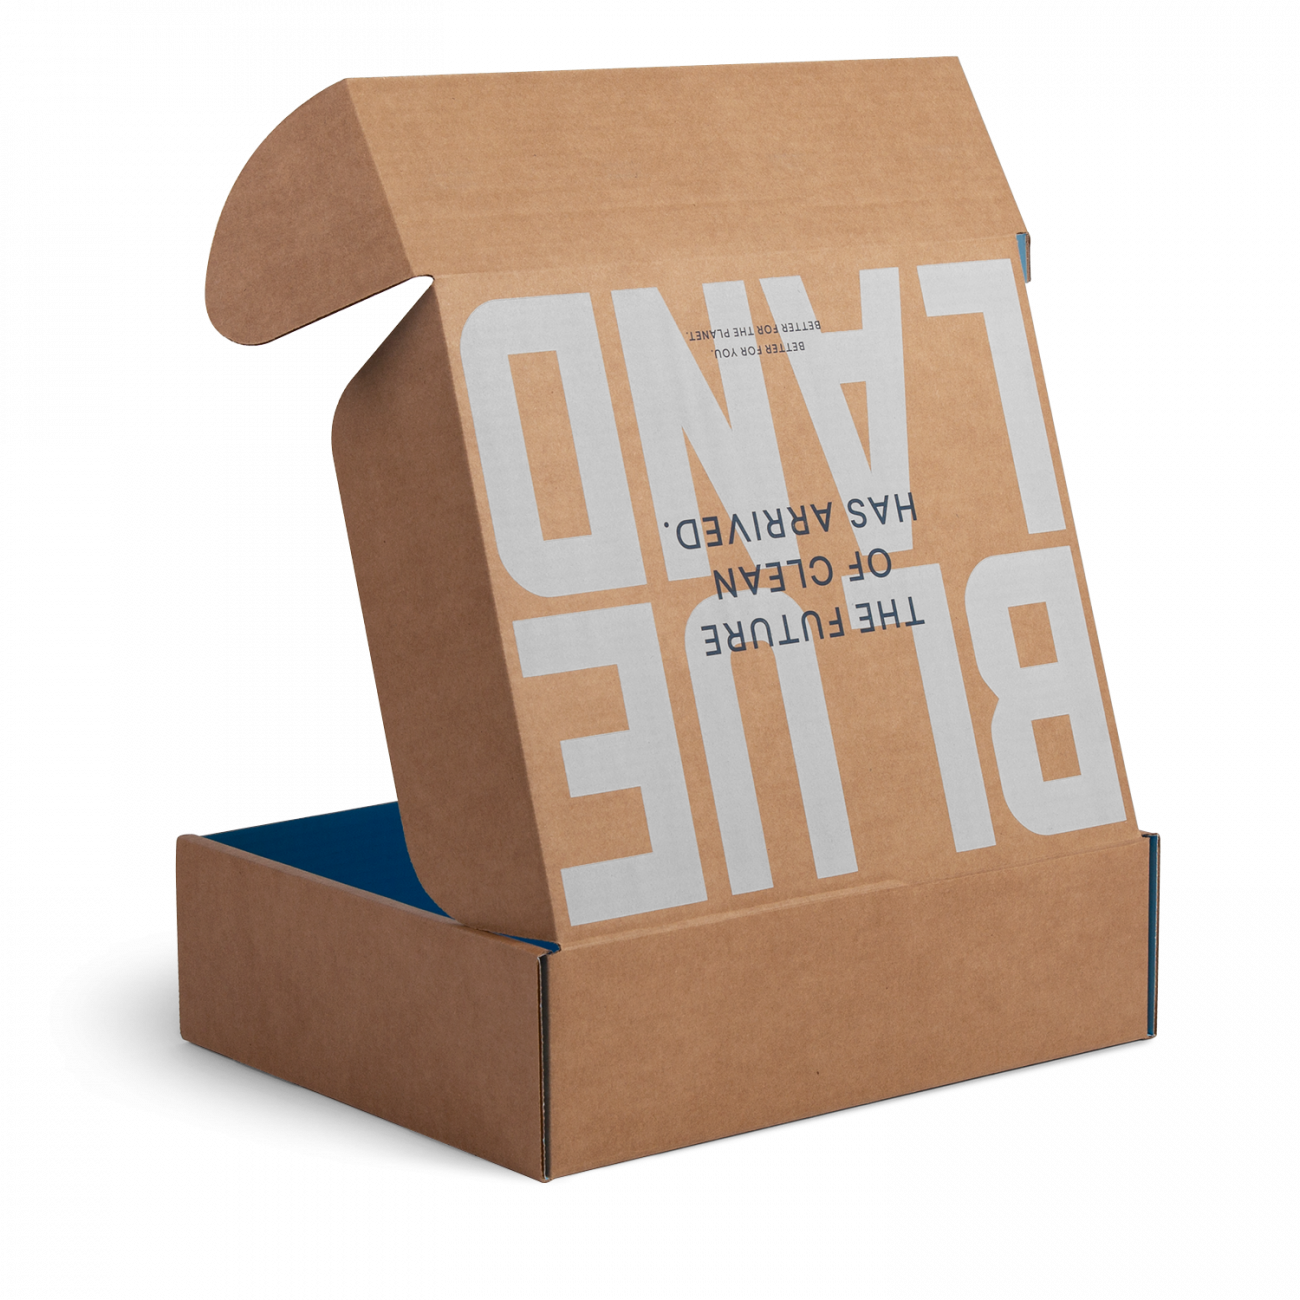 Custom roll end tuck front corrugated mailer box with roll end base, cherry locks, dust flaps, tuck front lid. Flexography on natural kraft liner.